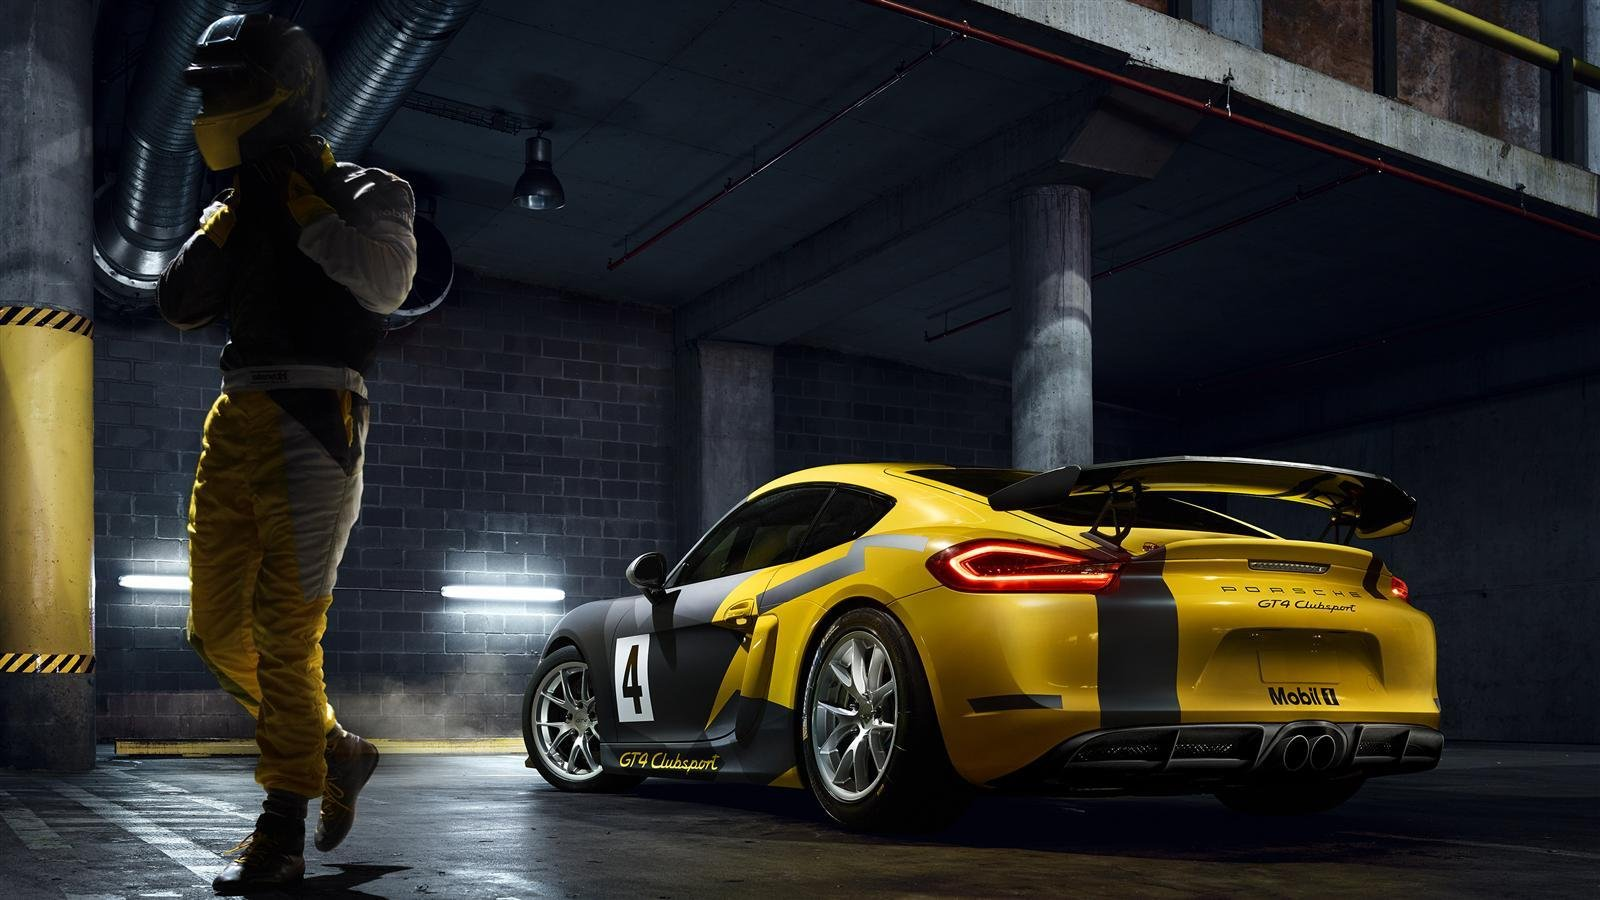 2016 porsche cayman gt4 clubsport picture 656574 car review top speed. Black Bedroom Furniture Sets. Home Design Ideas